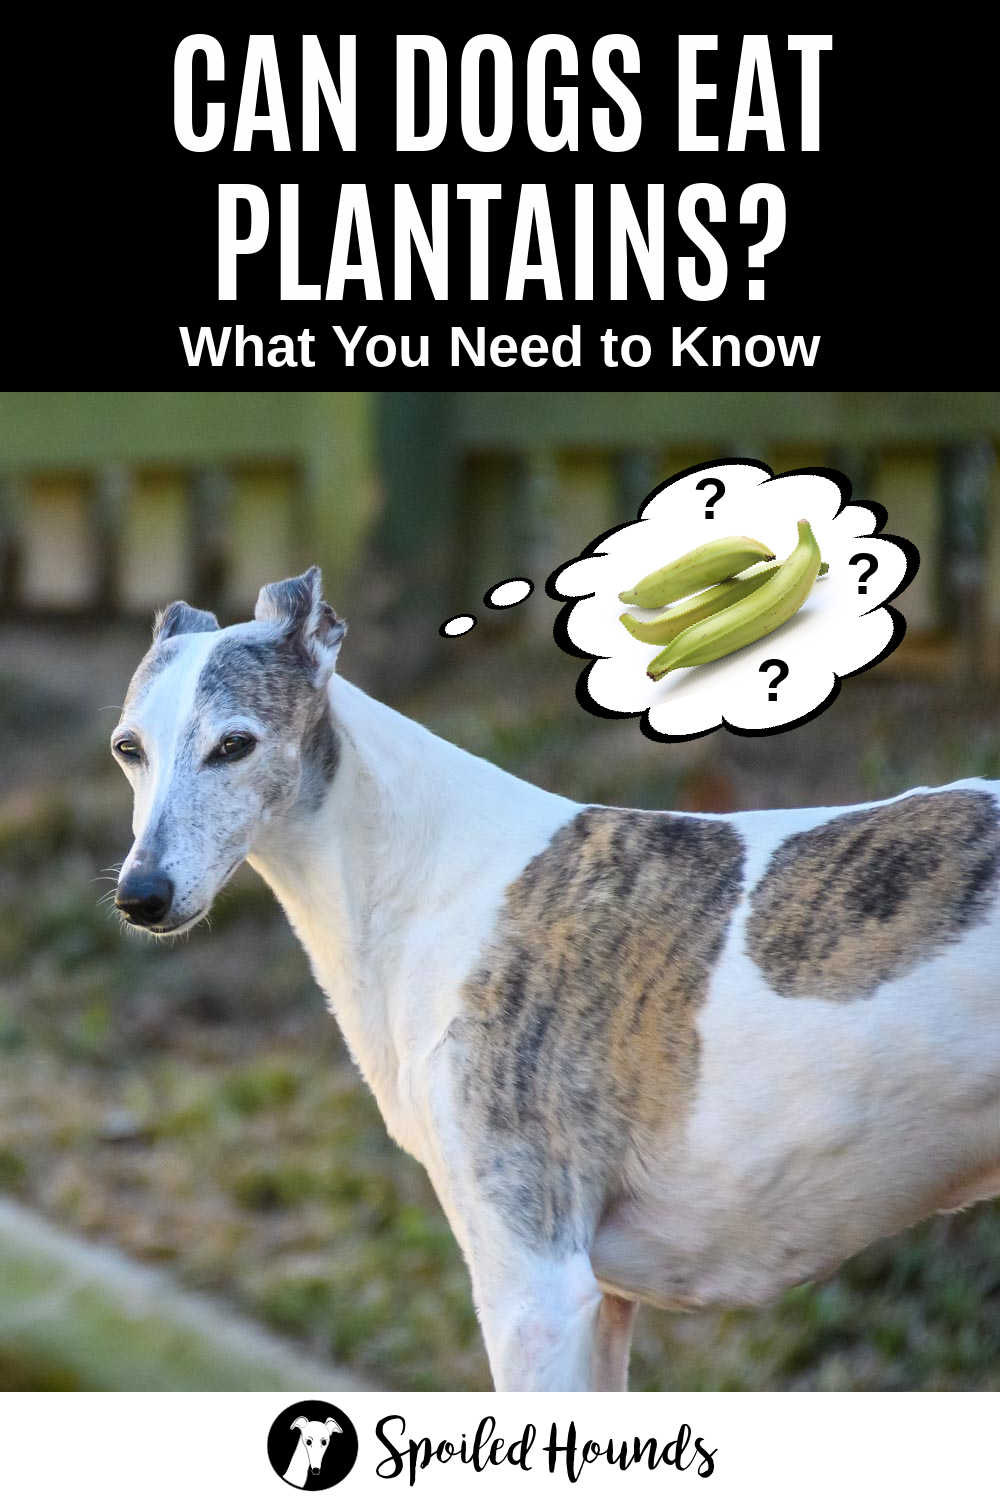 whippet dog wondering about plantains